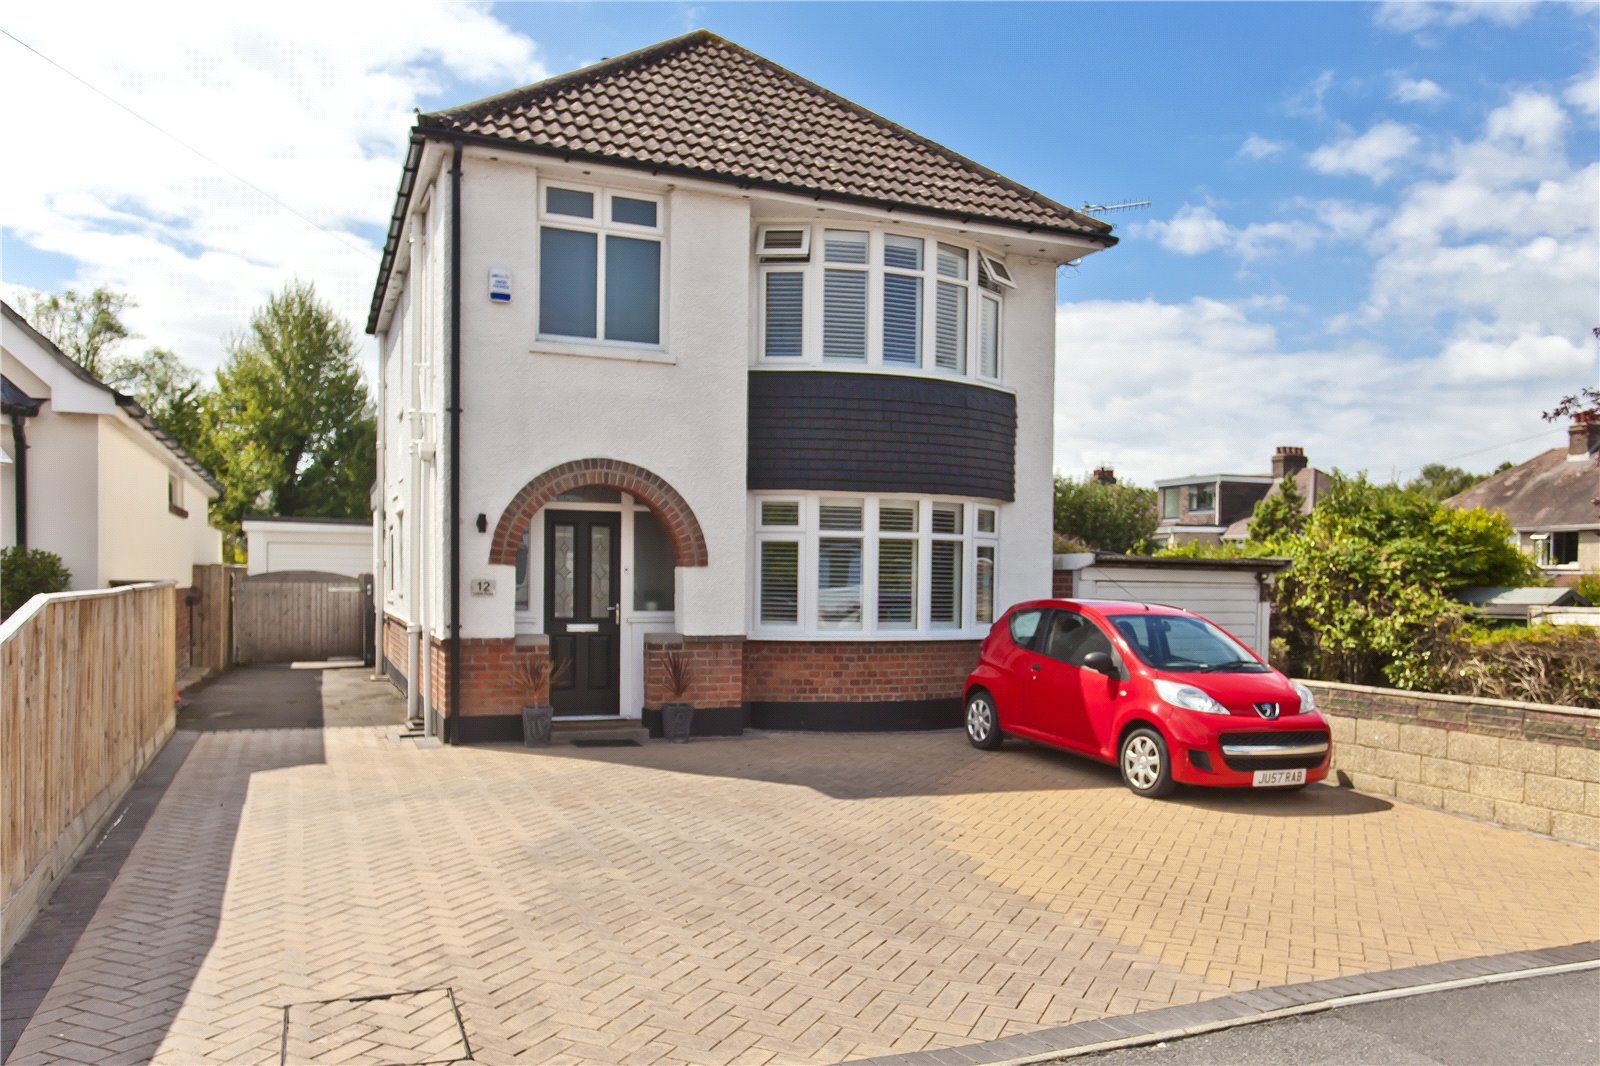 3 bed house for sale in Leslie Road, Whitecliff  - Property Image 1